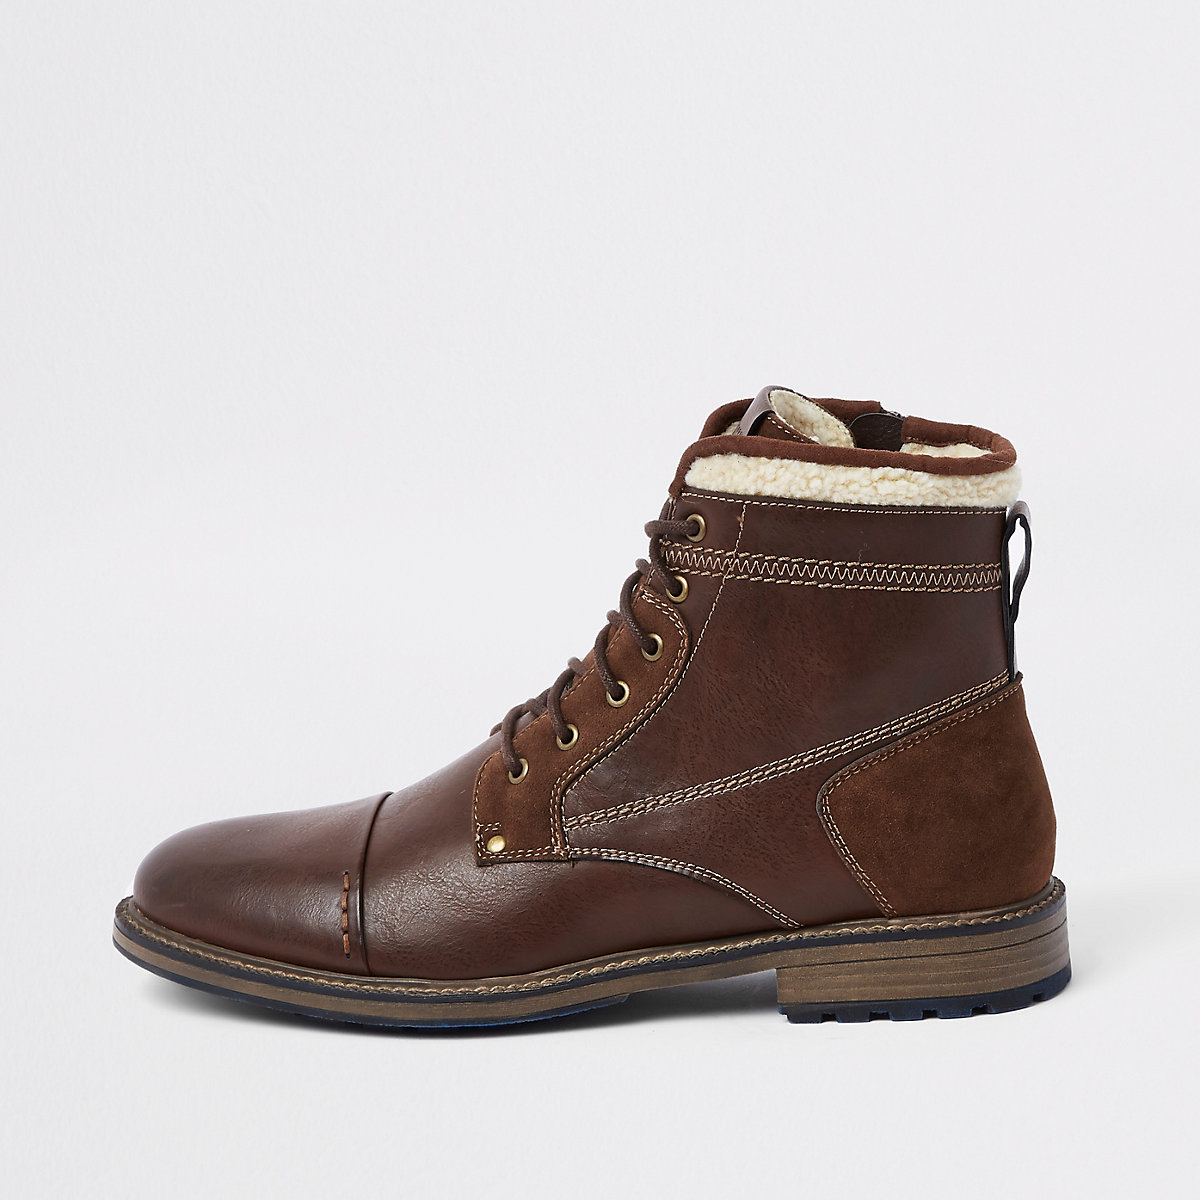 Brown borg trim lace-up boots